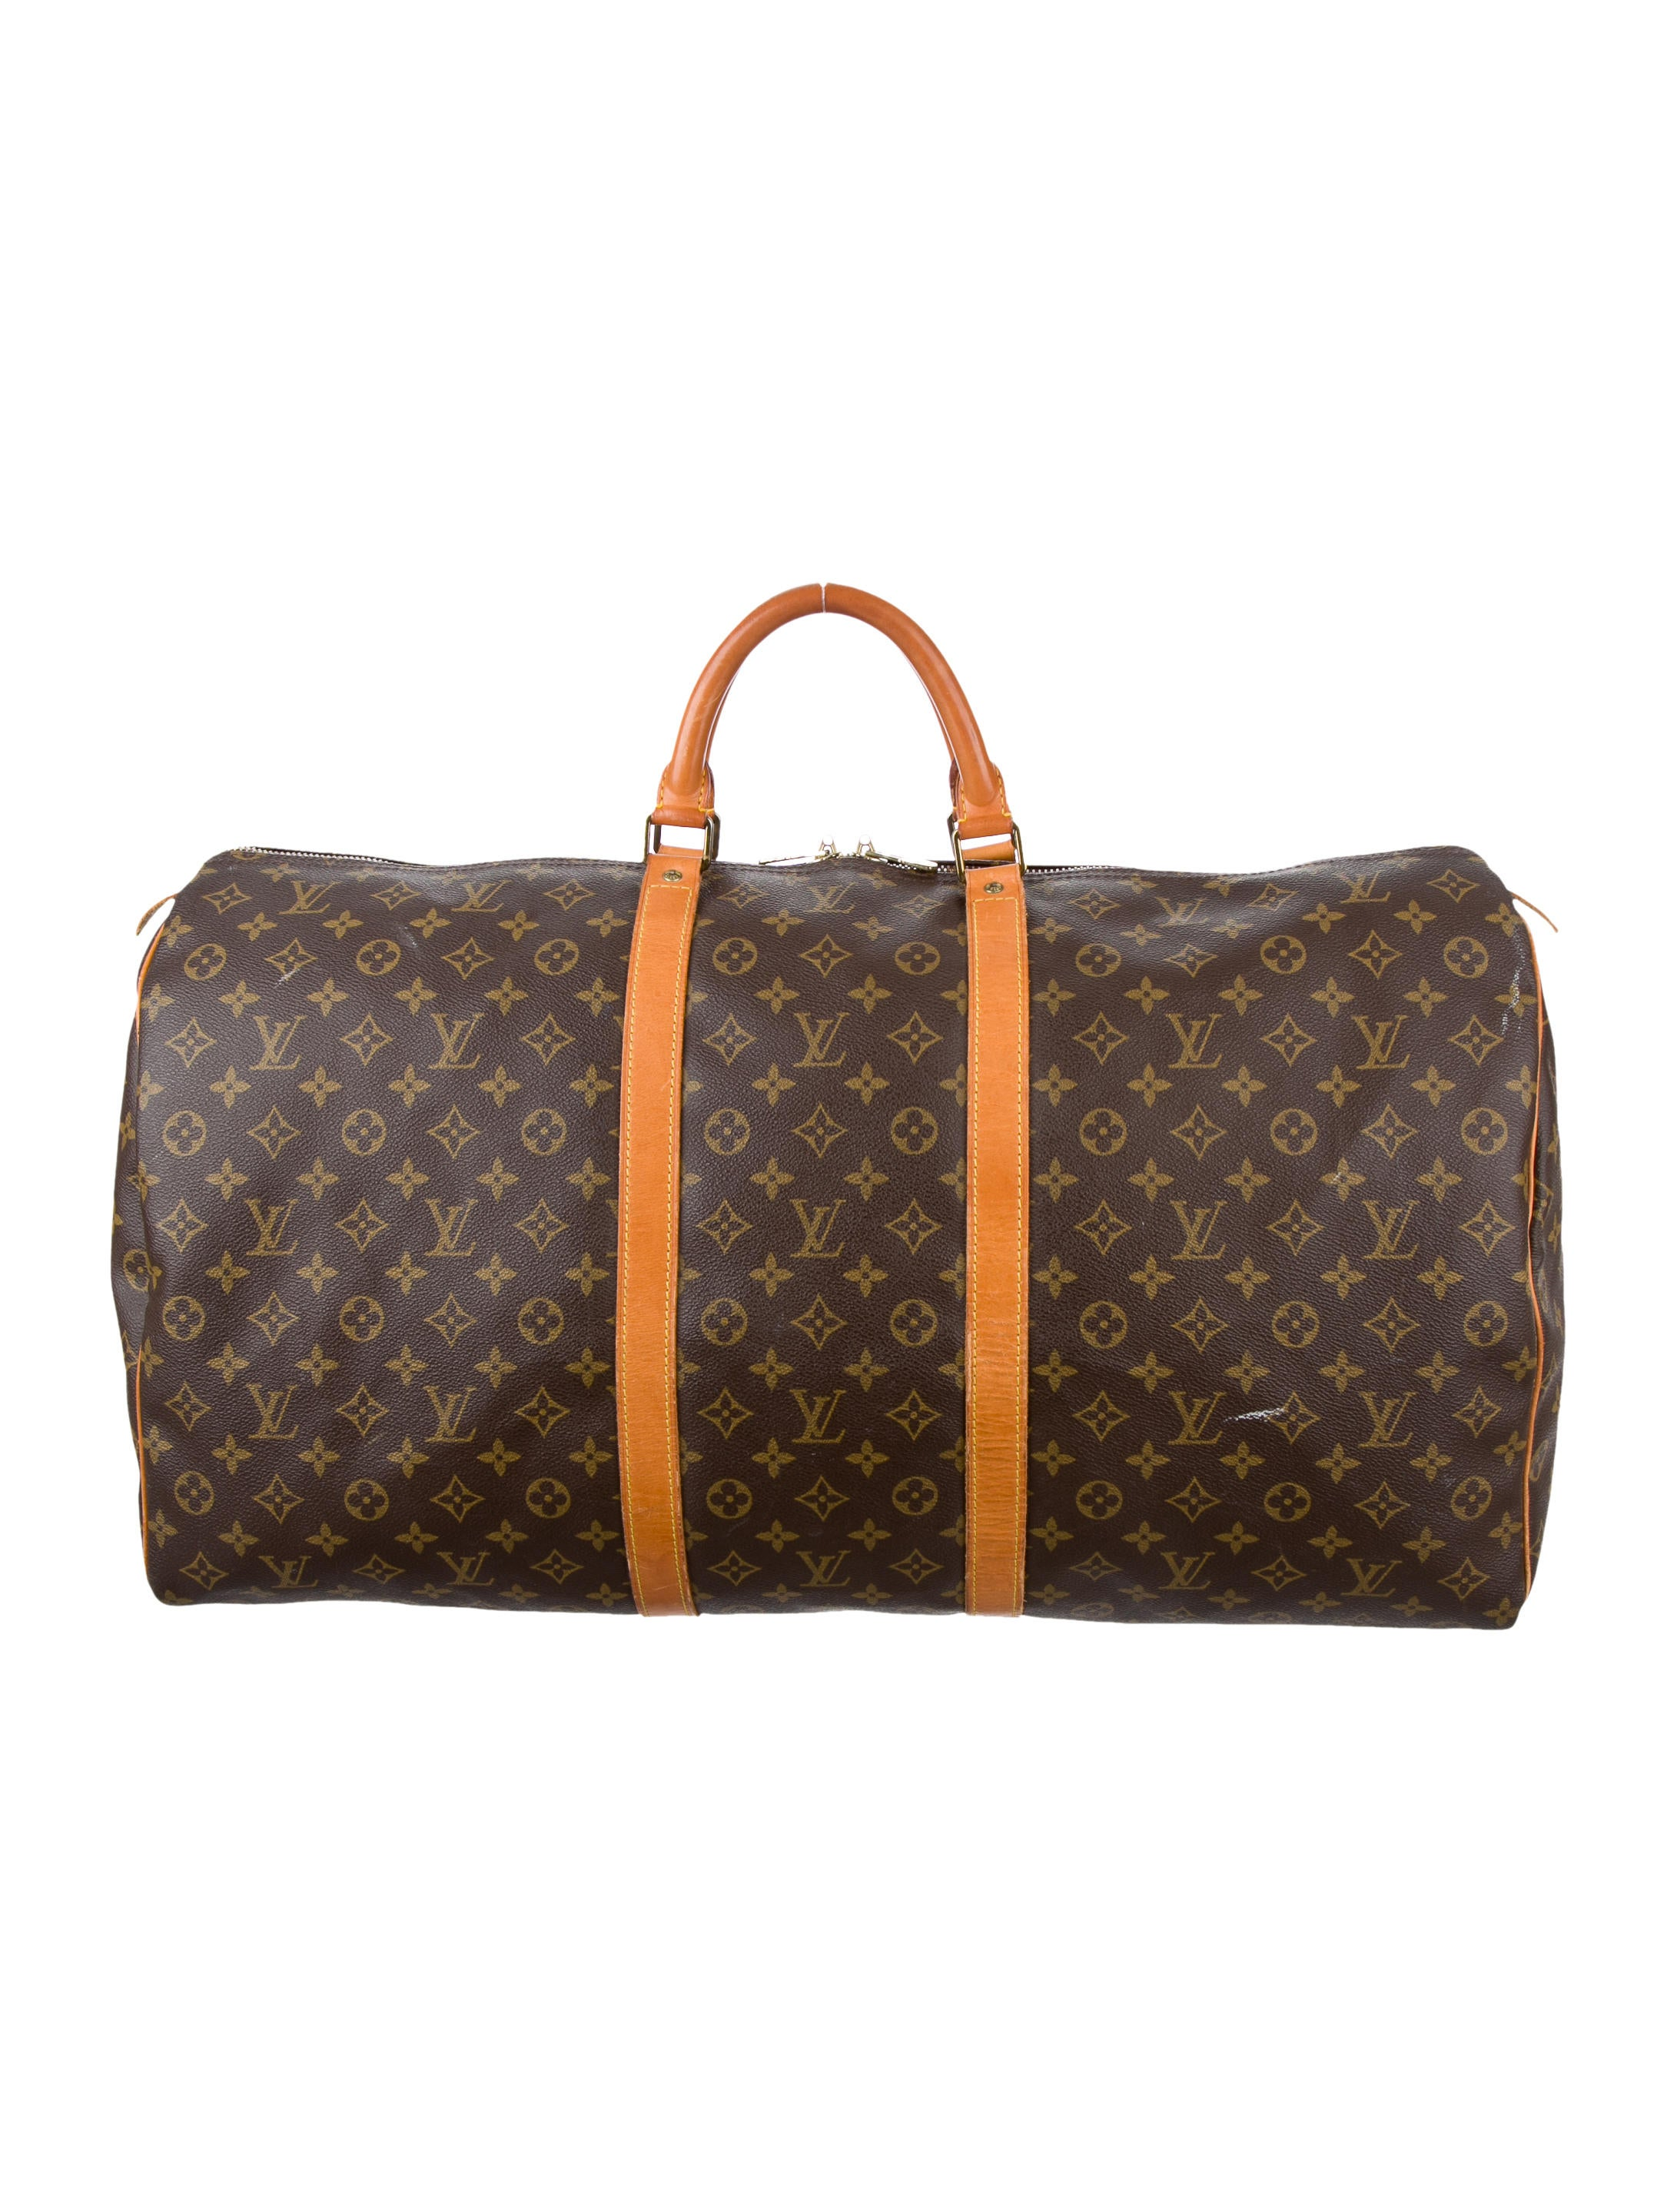 louis vuitton monogram keepall 60 bags lou97942 the. Black Bedroom Furniture Sets. Home Design Ideas